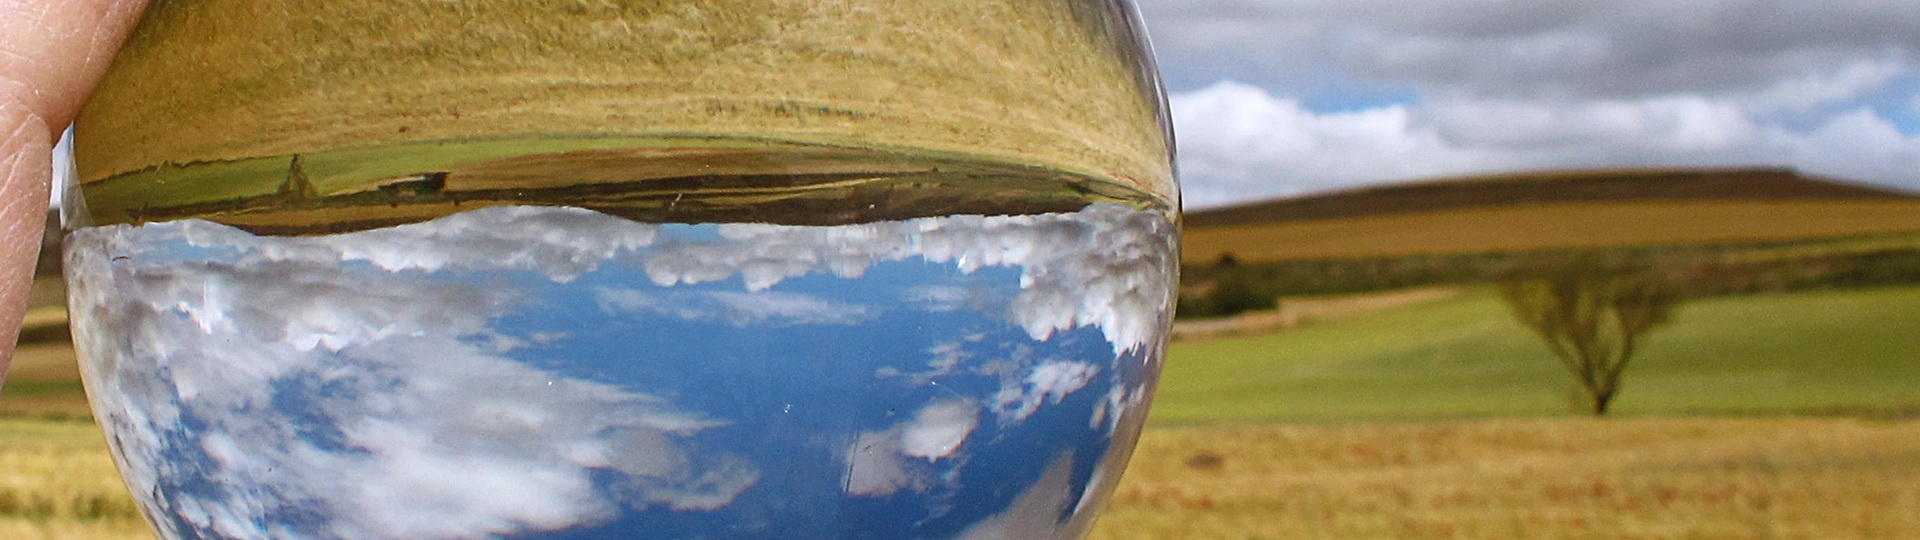 Image of a crystal ball held up to a landscape of fields, by Jacinta Iluch Valero on Flickr